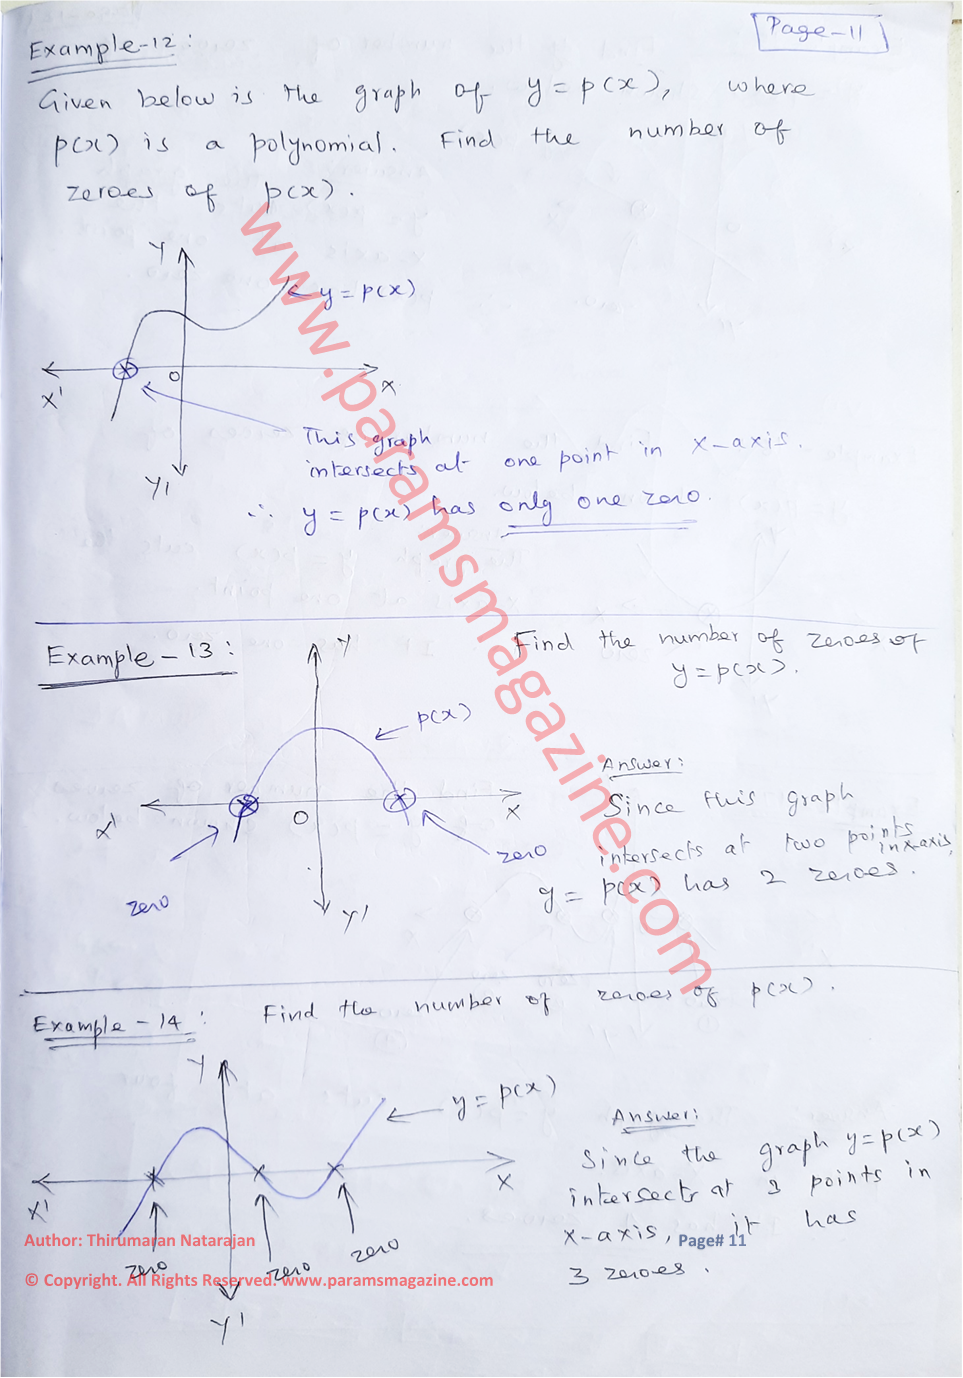 Class-10 - Polynomials - Notes - Page-11